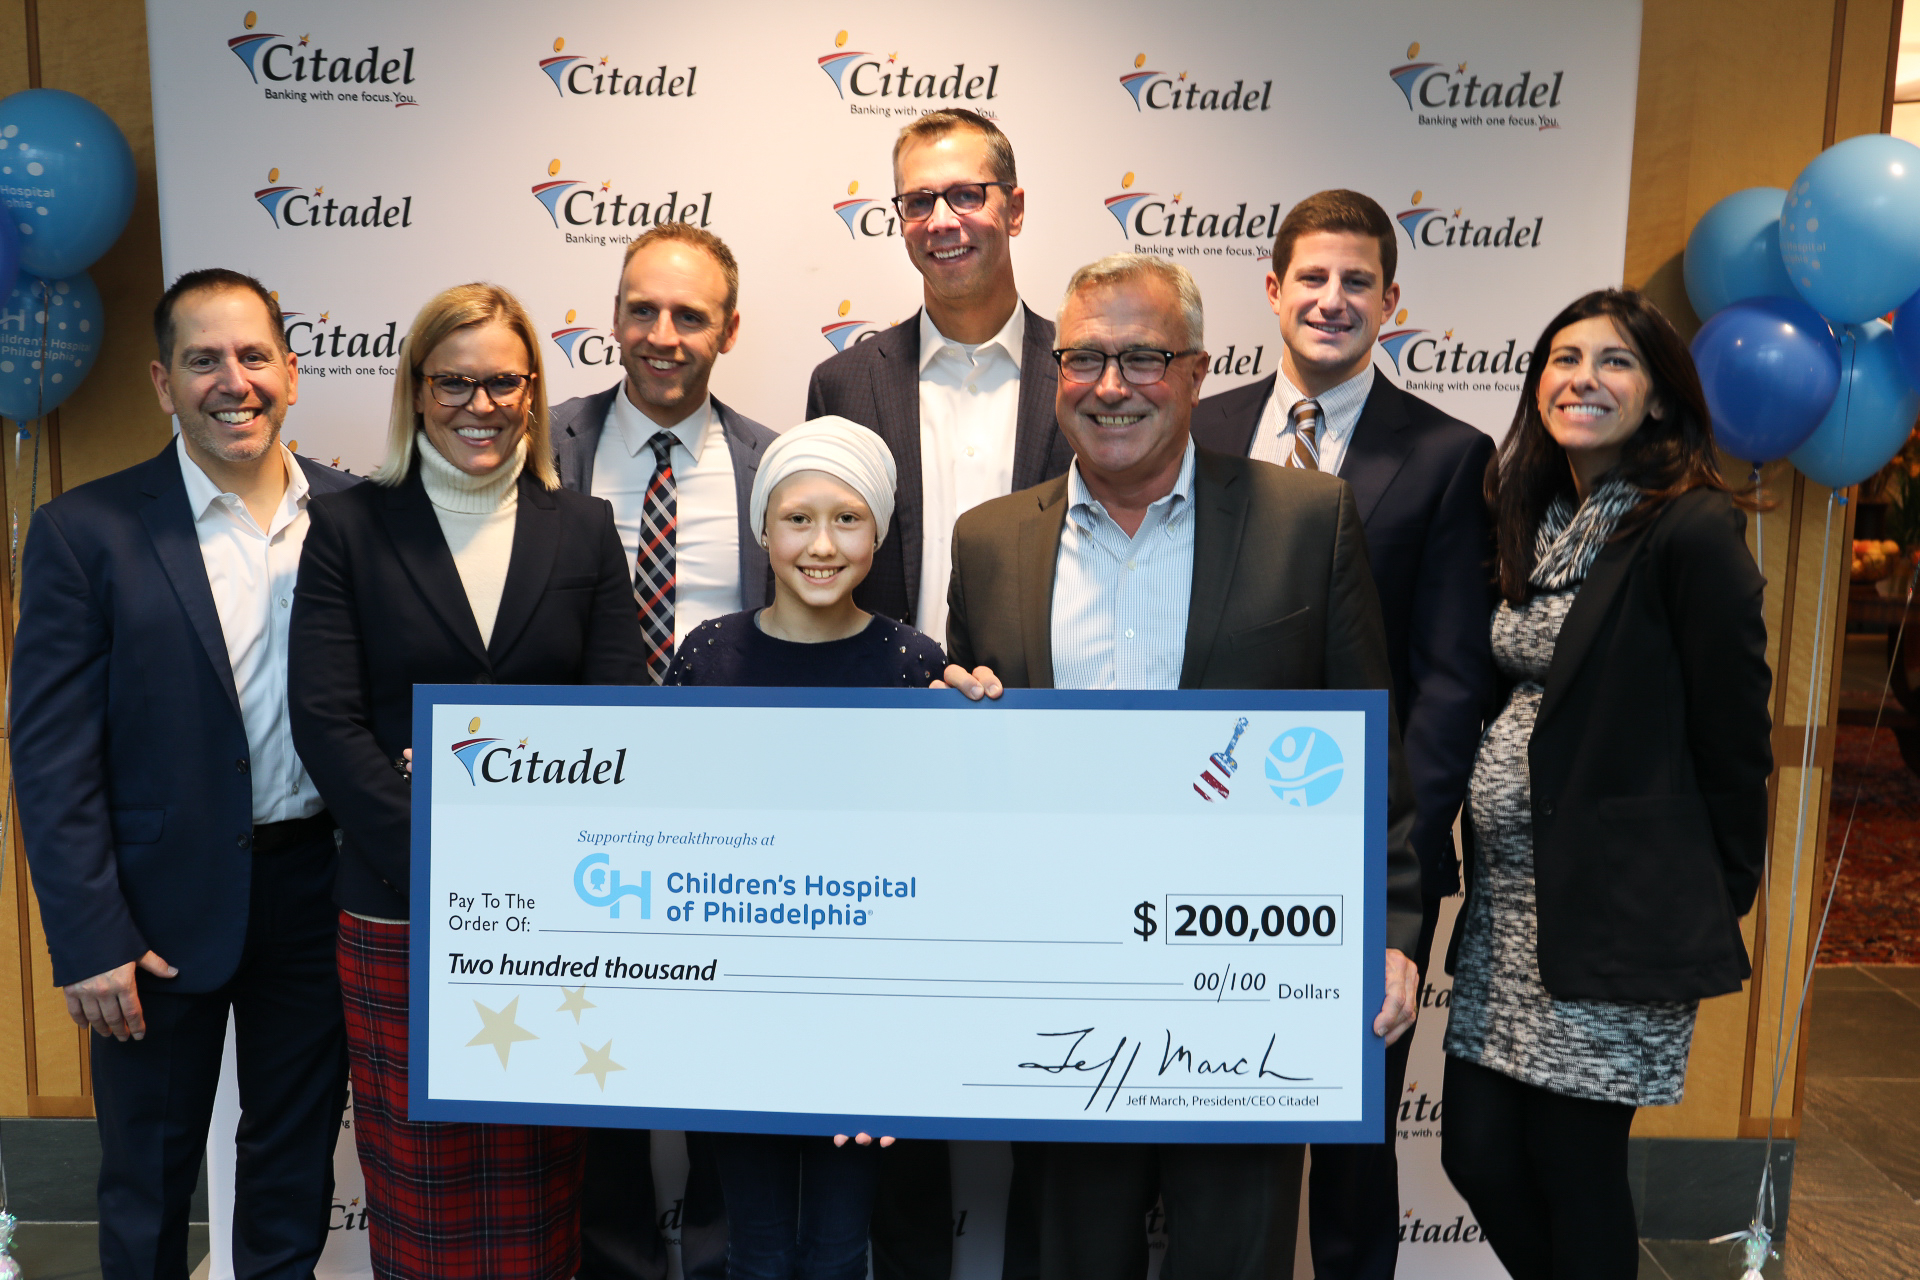 Citadel's $200,000 Donation to CHOP a Testament to Its Founding Philosophy of People Helping People